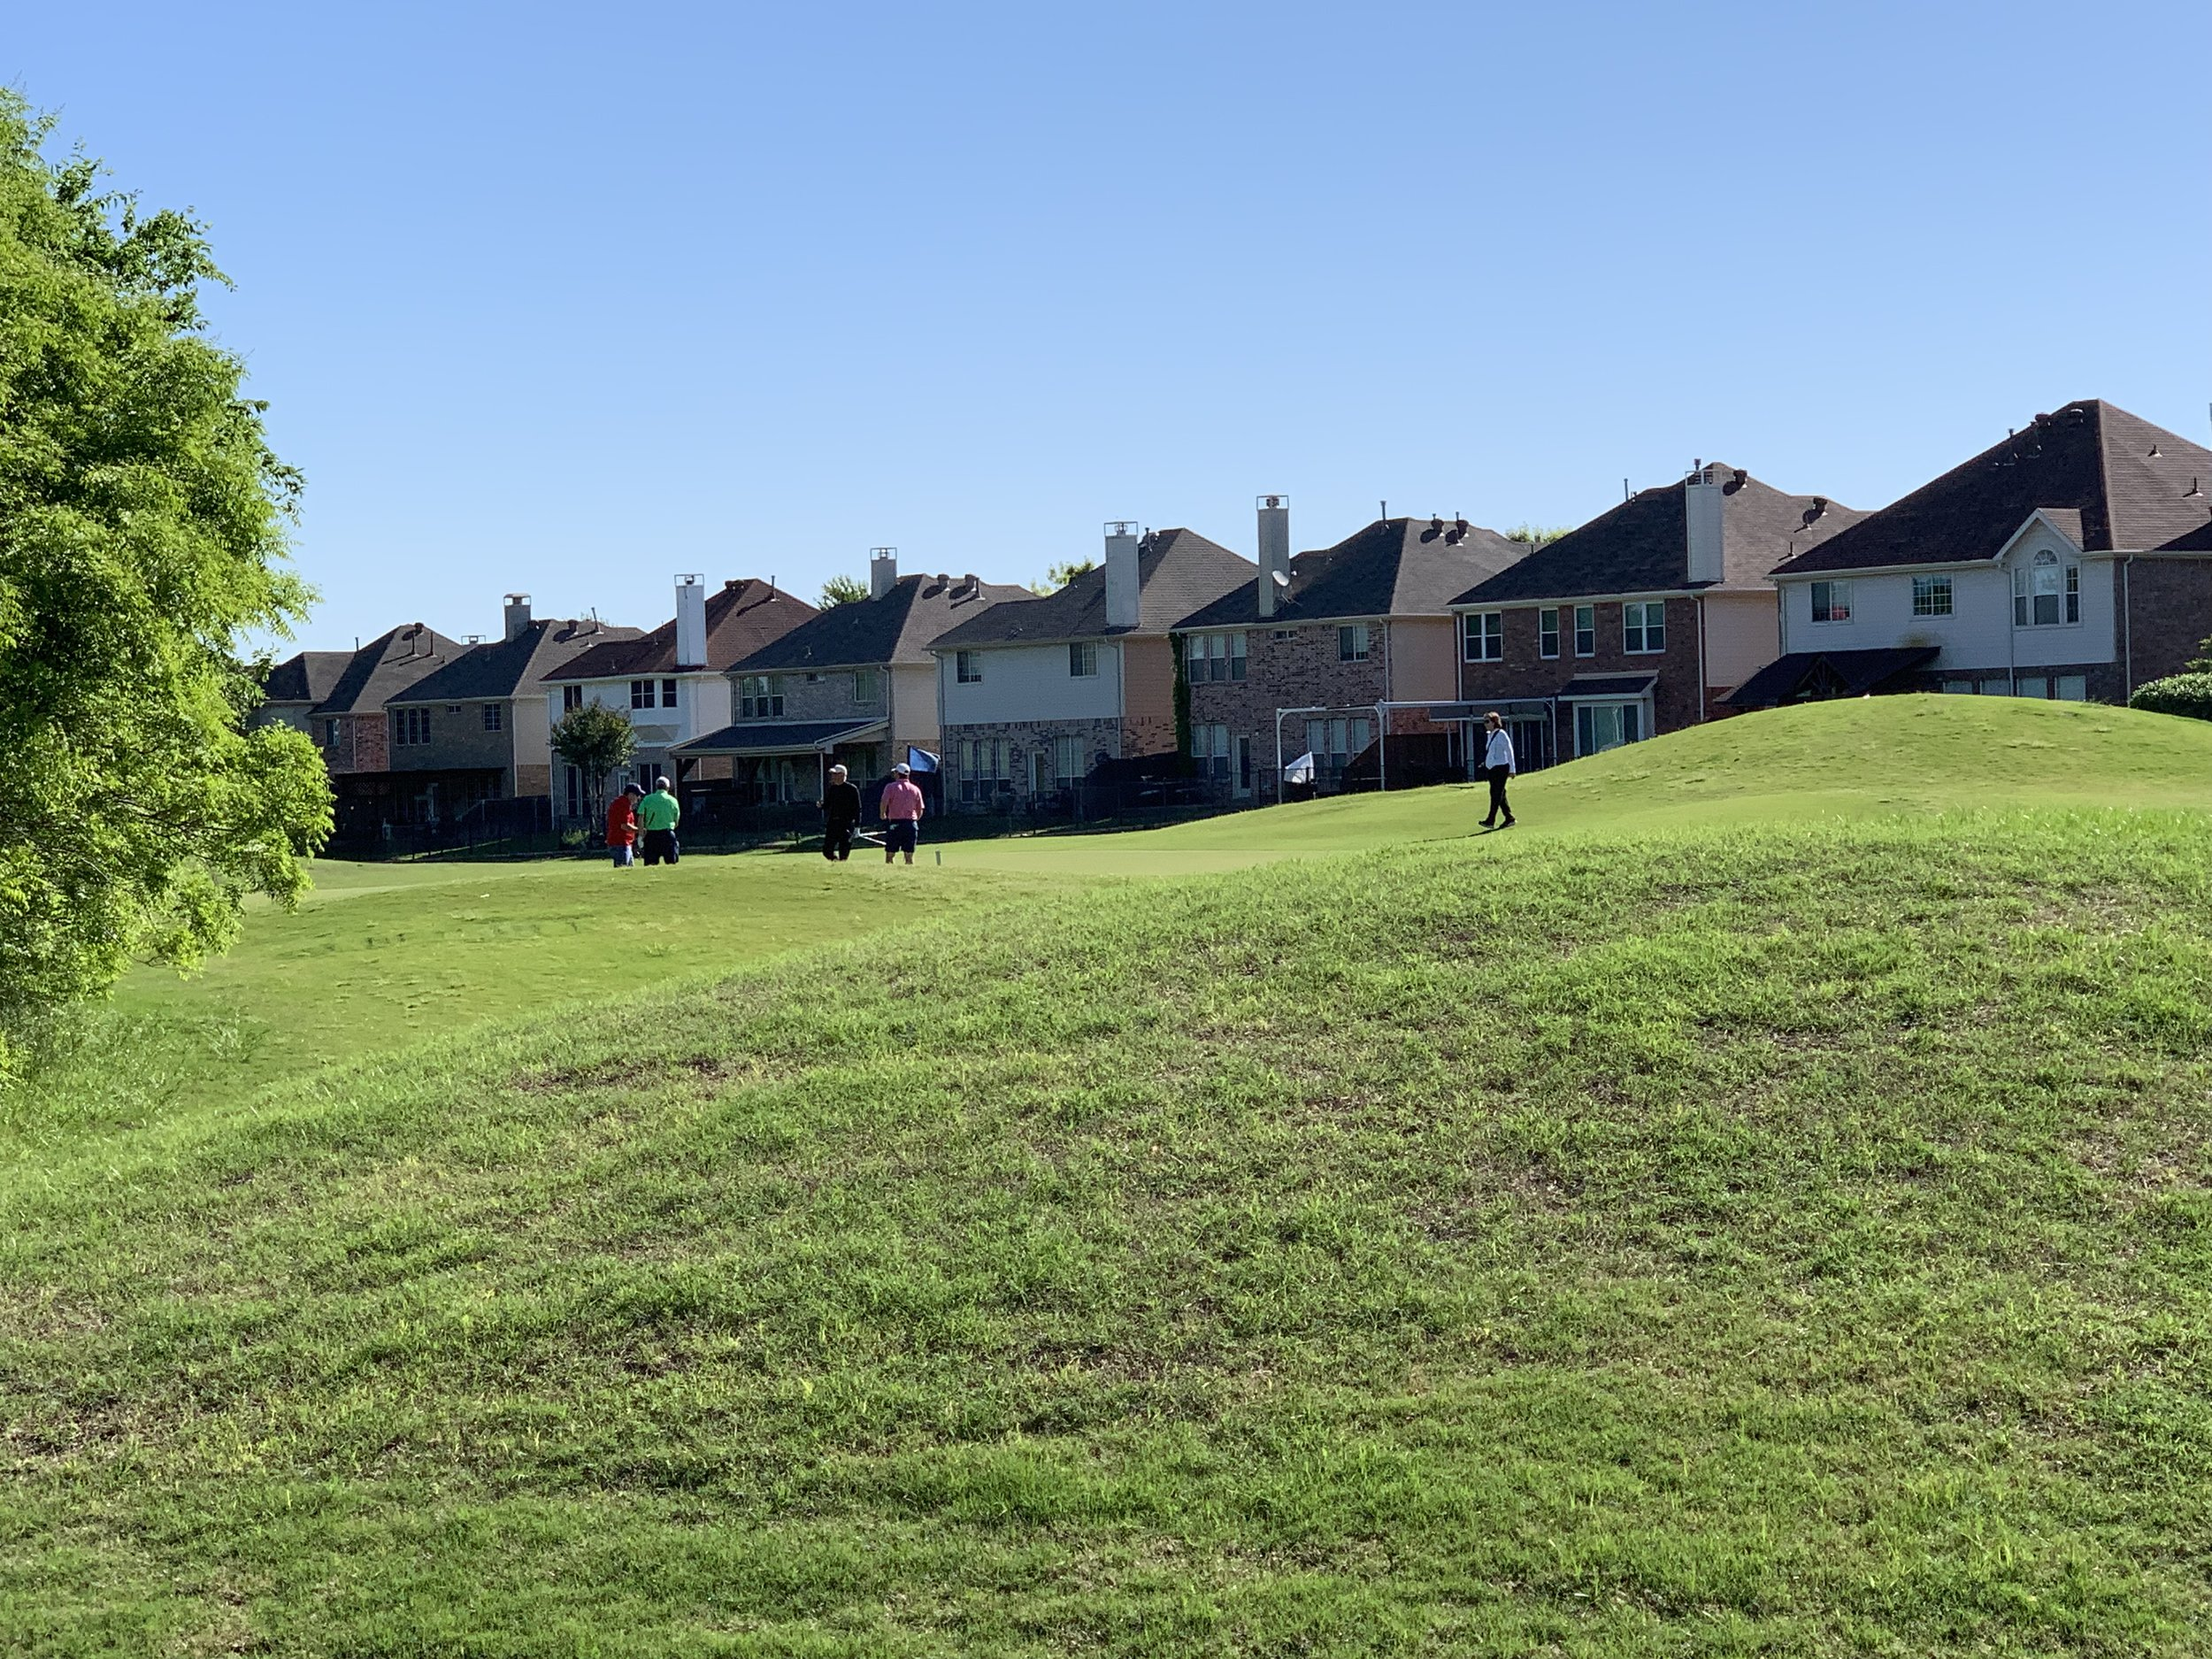 Photo Apr 26, 9 41 13 AM.jpg